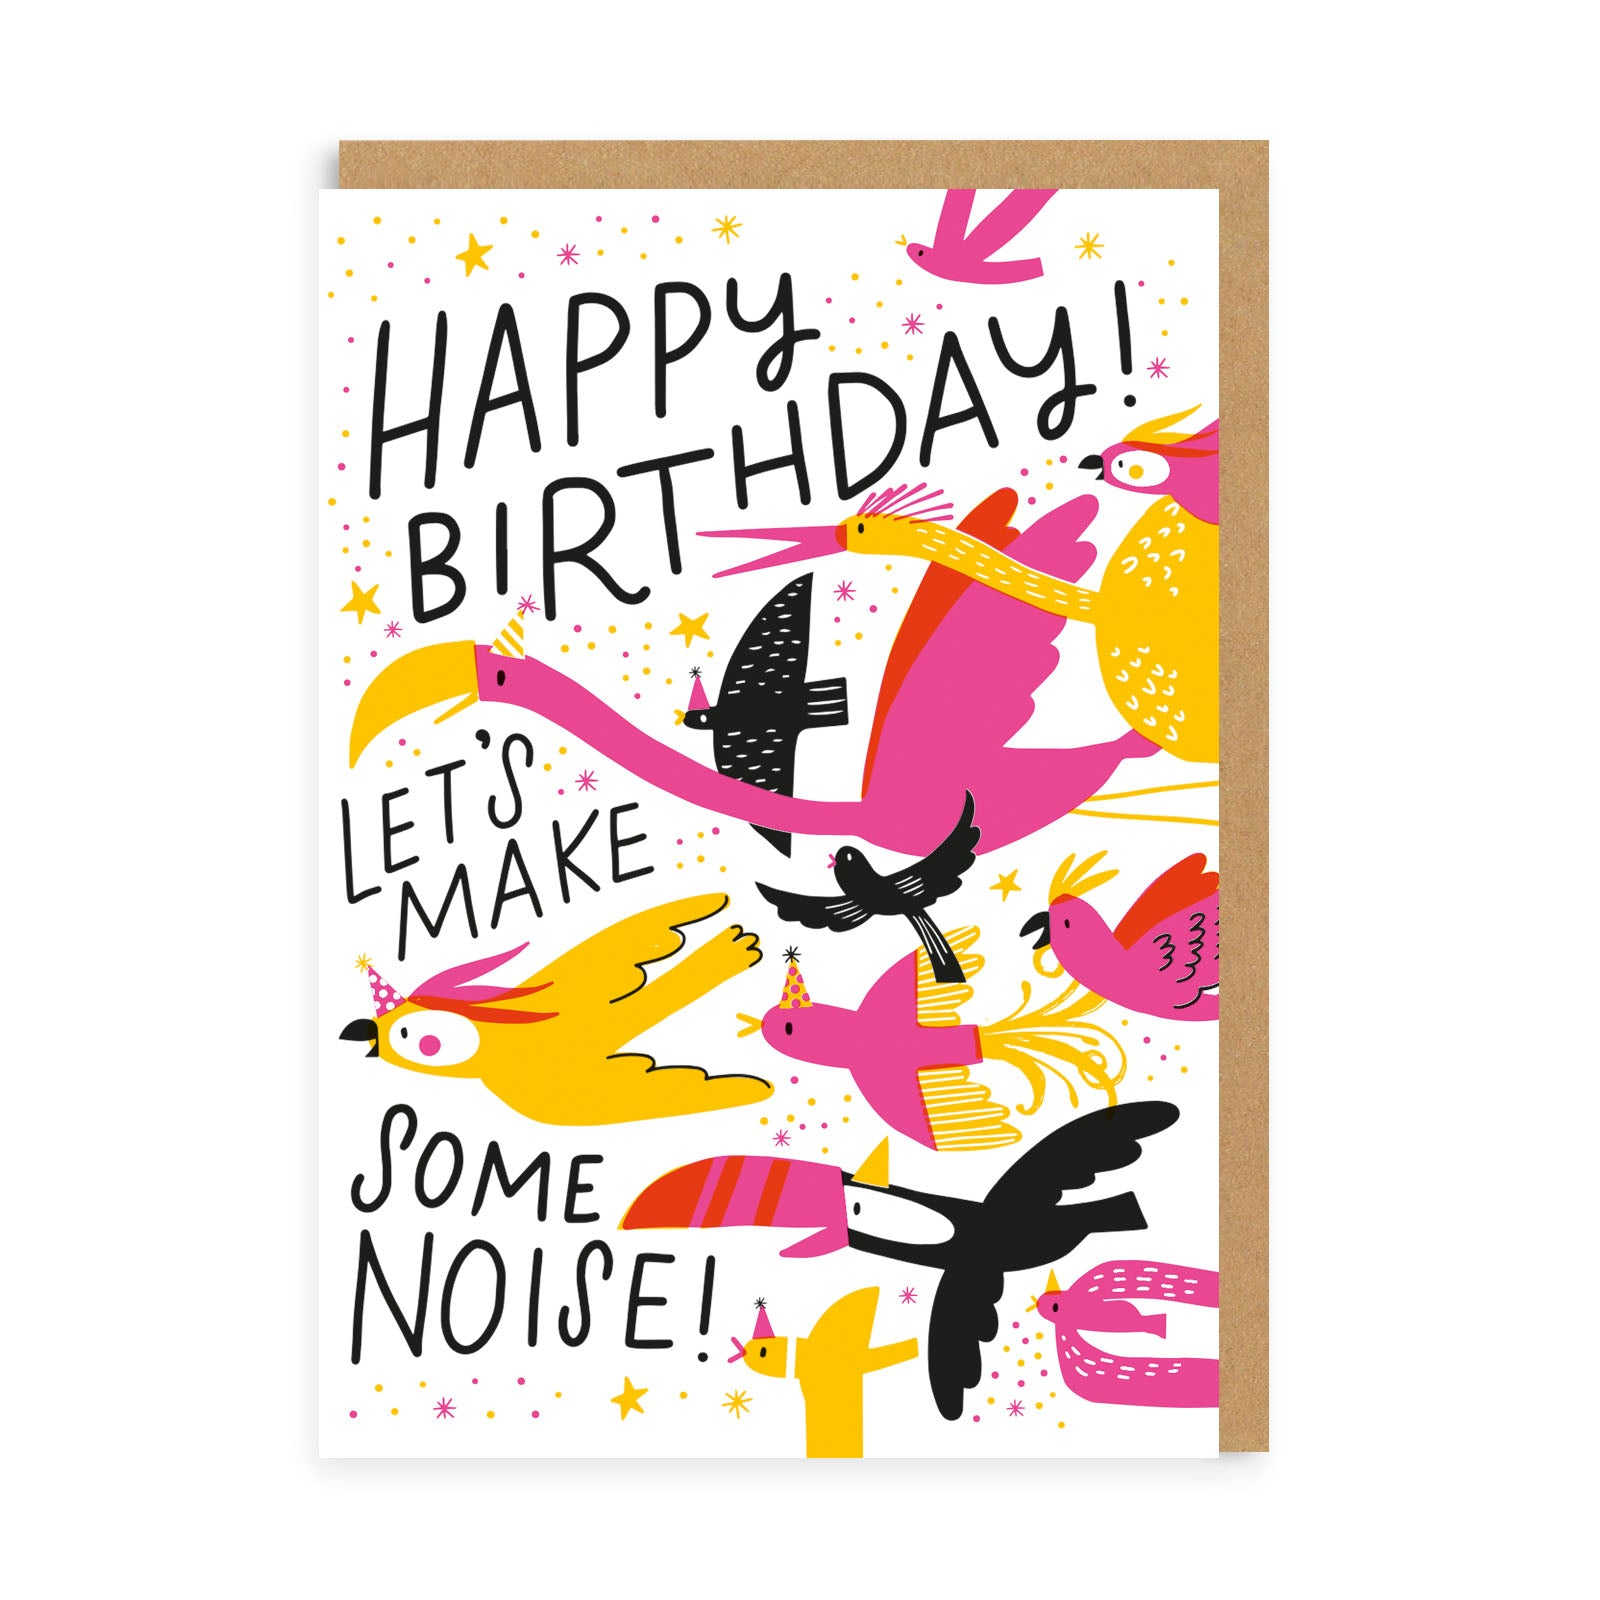 Let's Make Some Noise Greeting Card